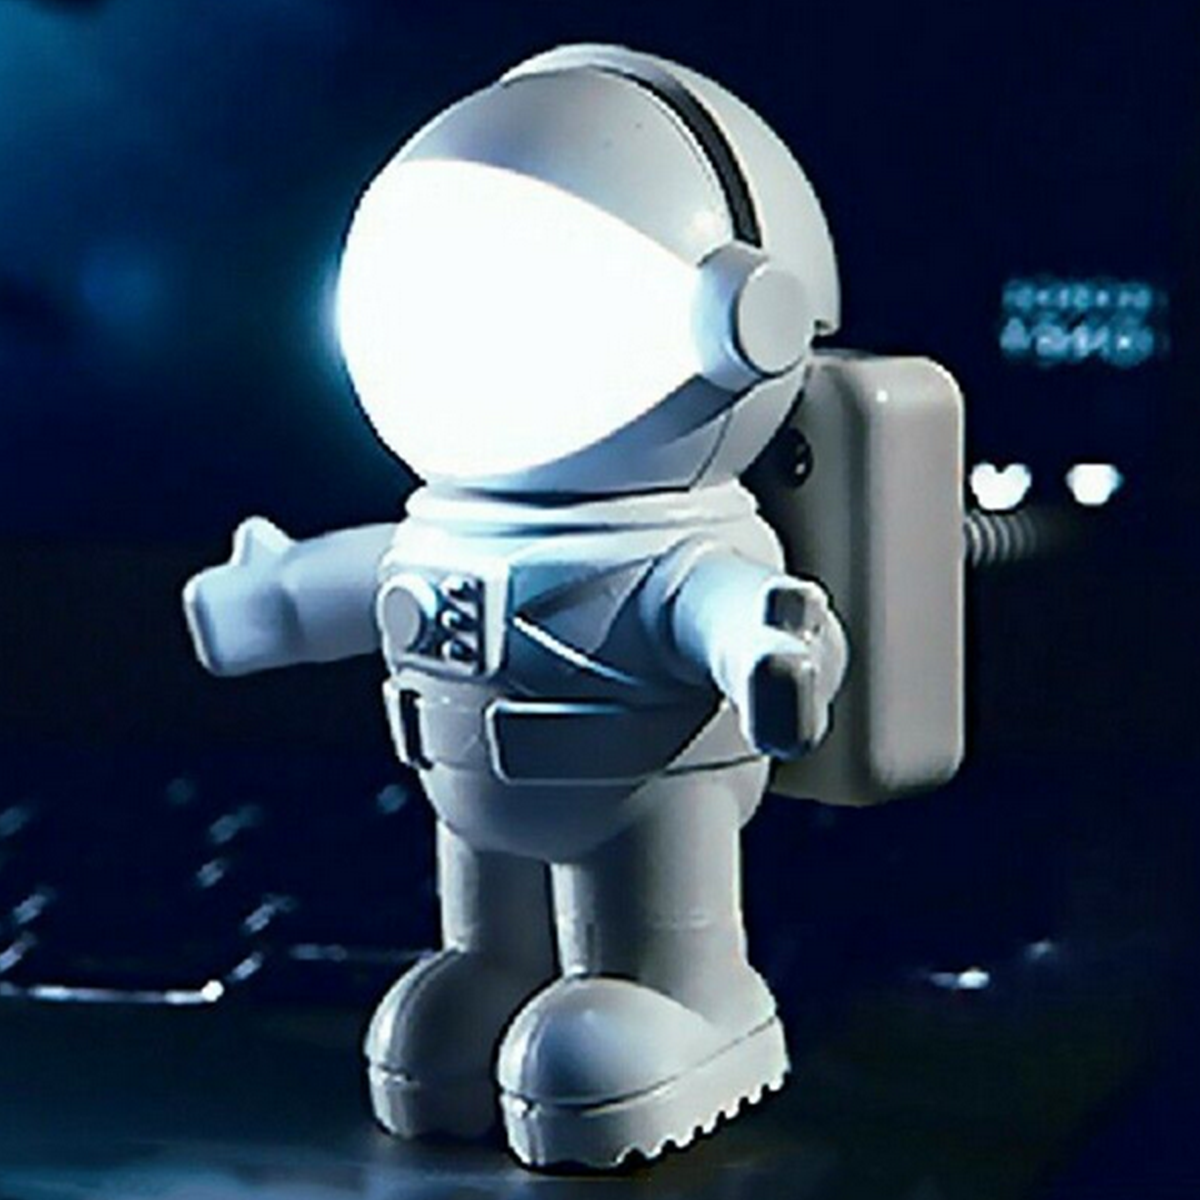 Astronaut Spaceman USB LED Adjustable Night Light For Computer PC Lamp Desk Kids